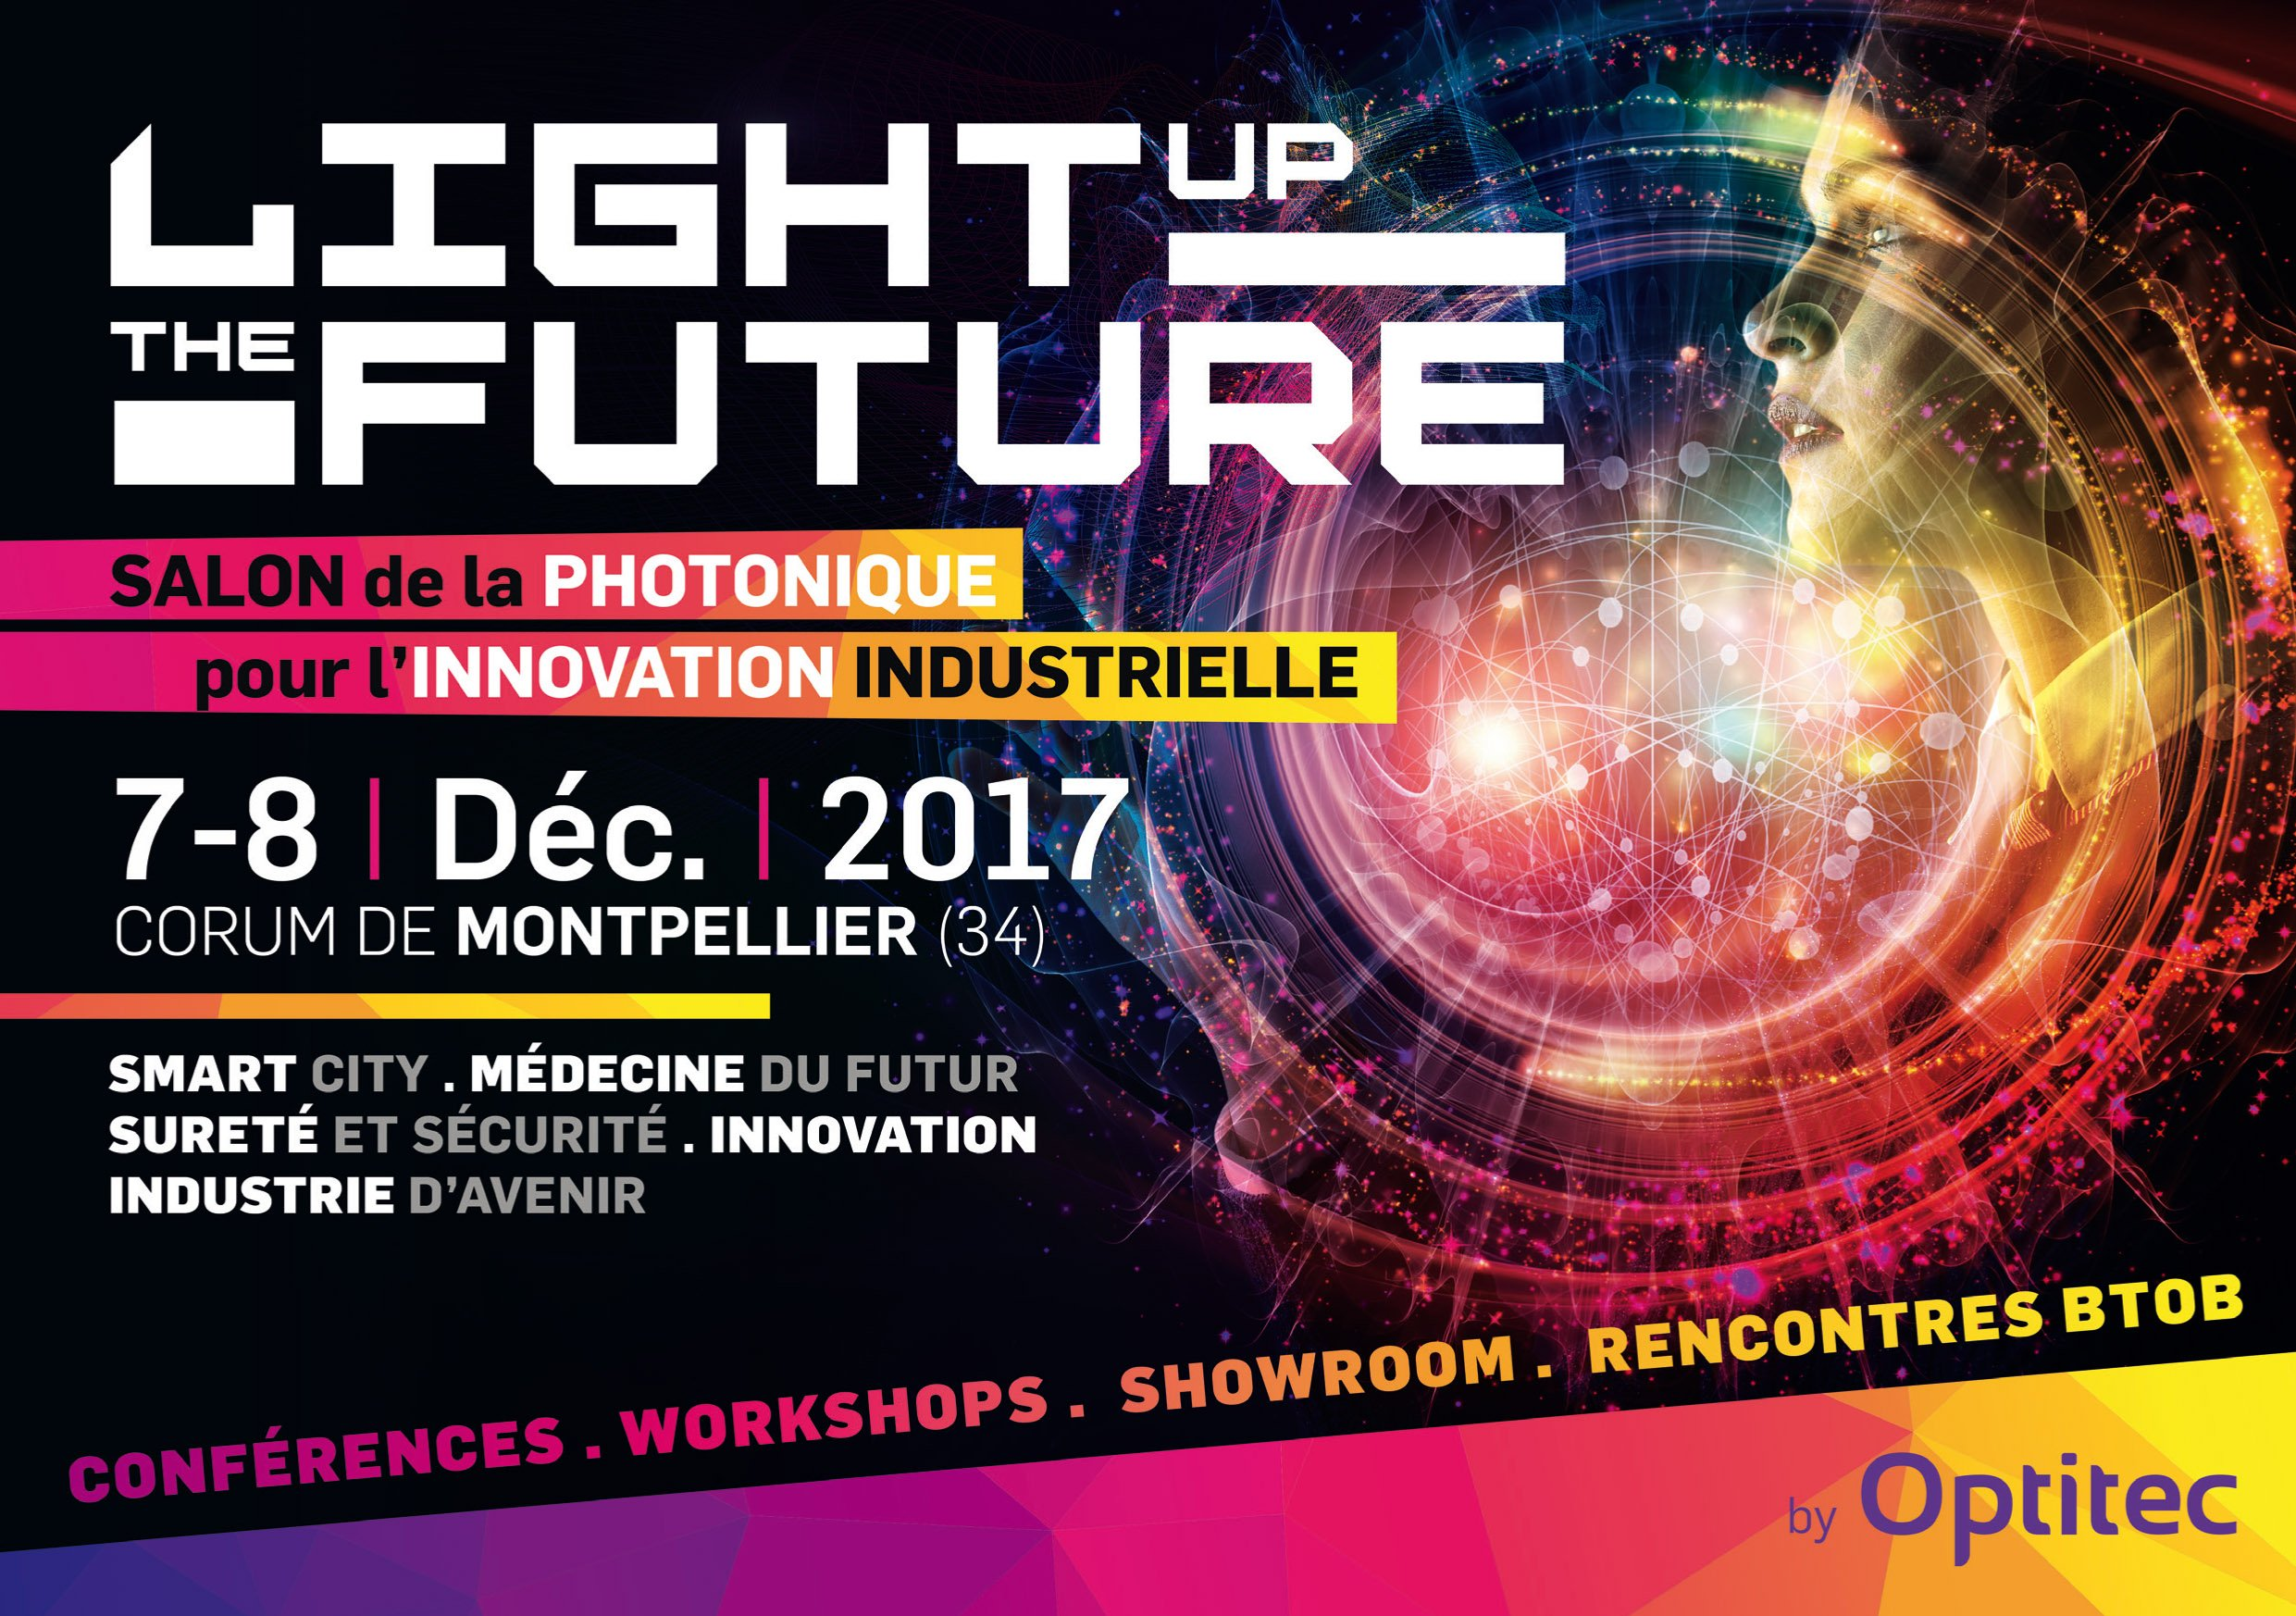 LightUptheFuture, le salon de la photonique pour l'innovation industrielle !